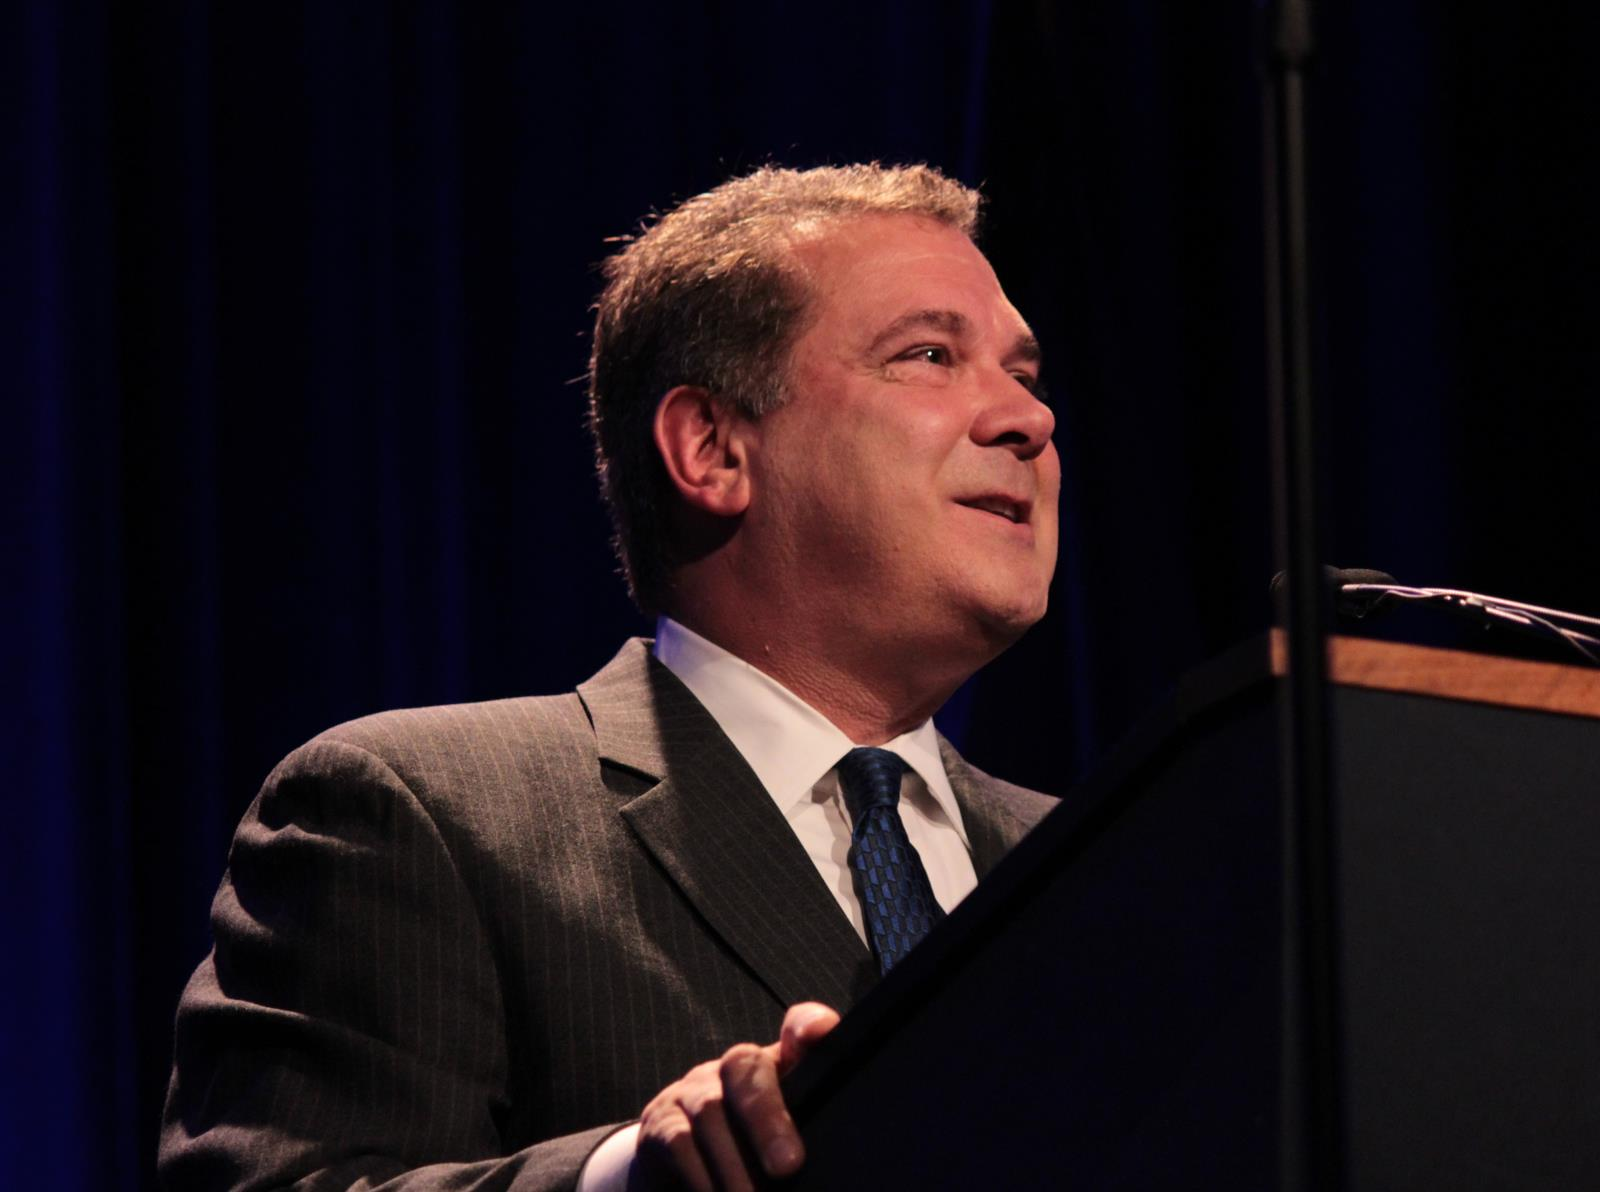 Mayor Mike Spano